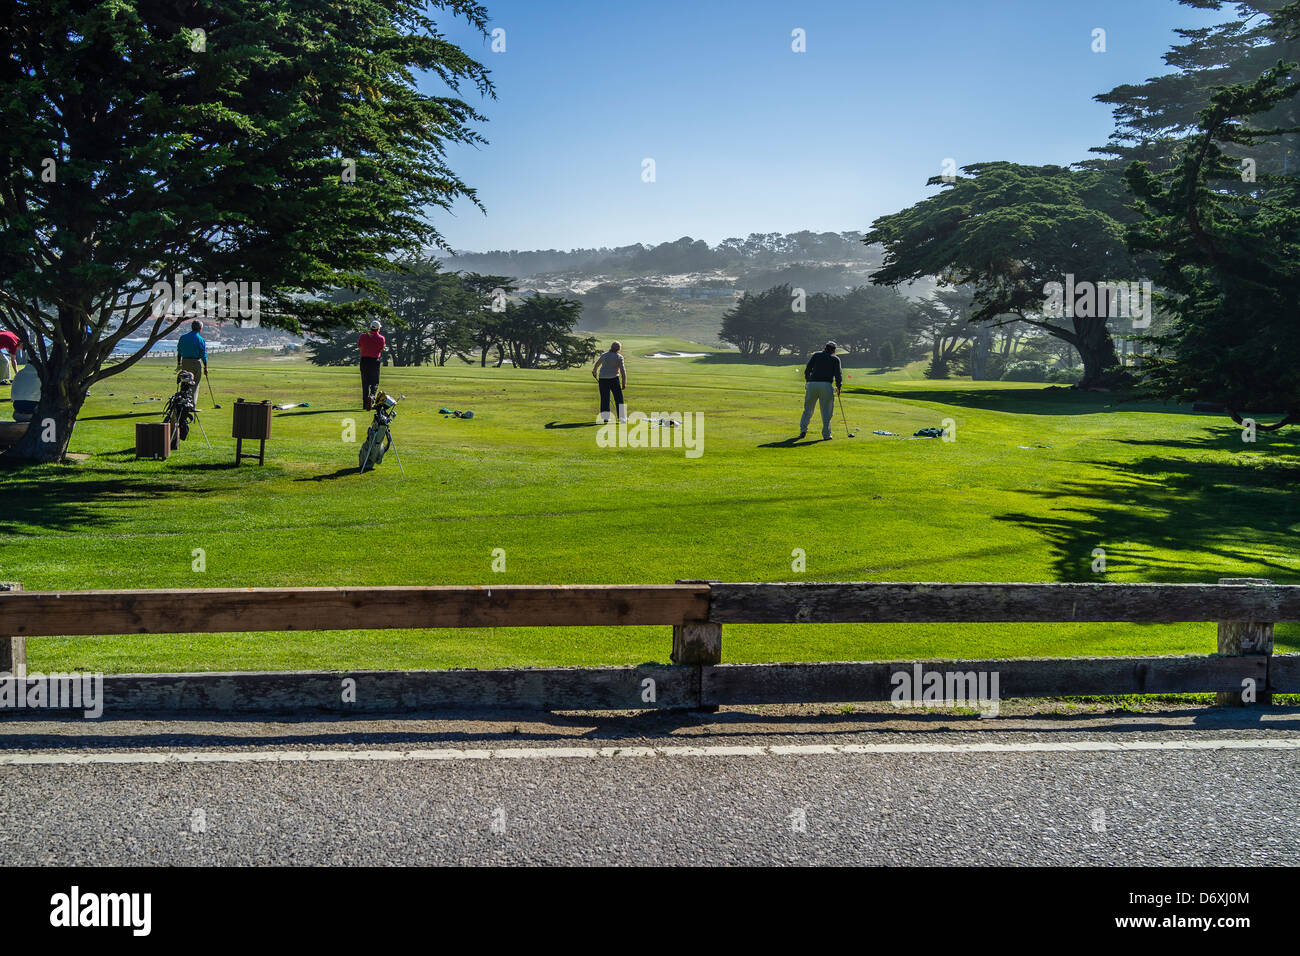 Golfers tee off at a driving range on the Monterey Peninsula near Pebble Beach in Northern California, USA. - Stock Image